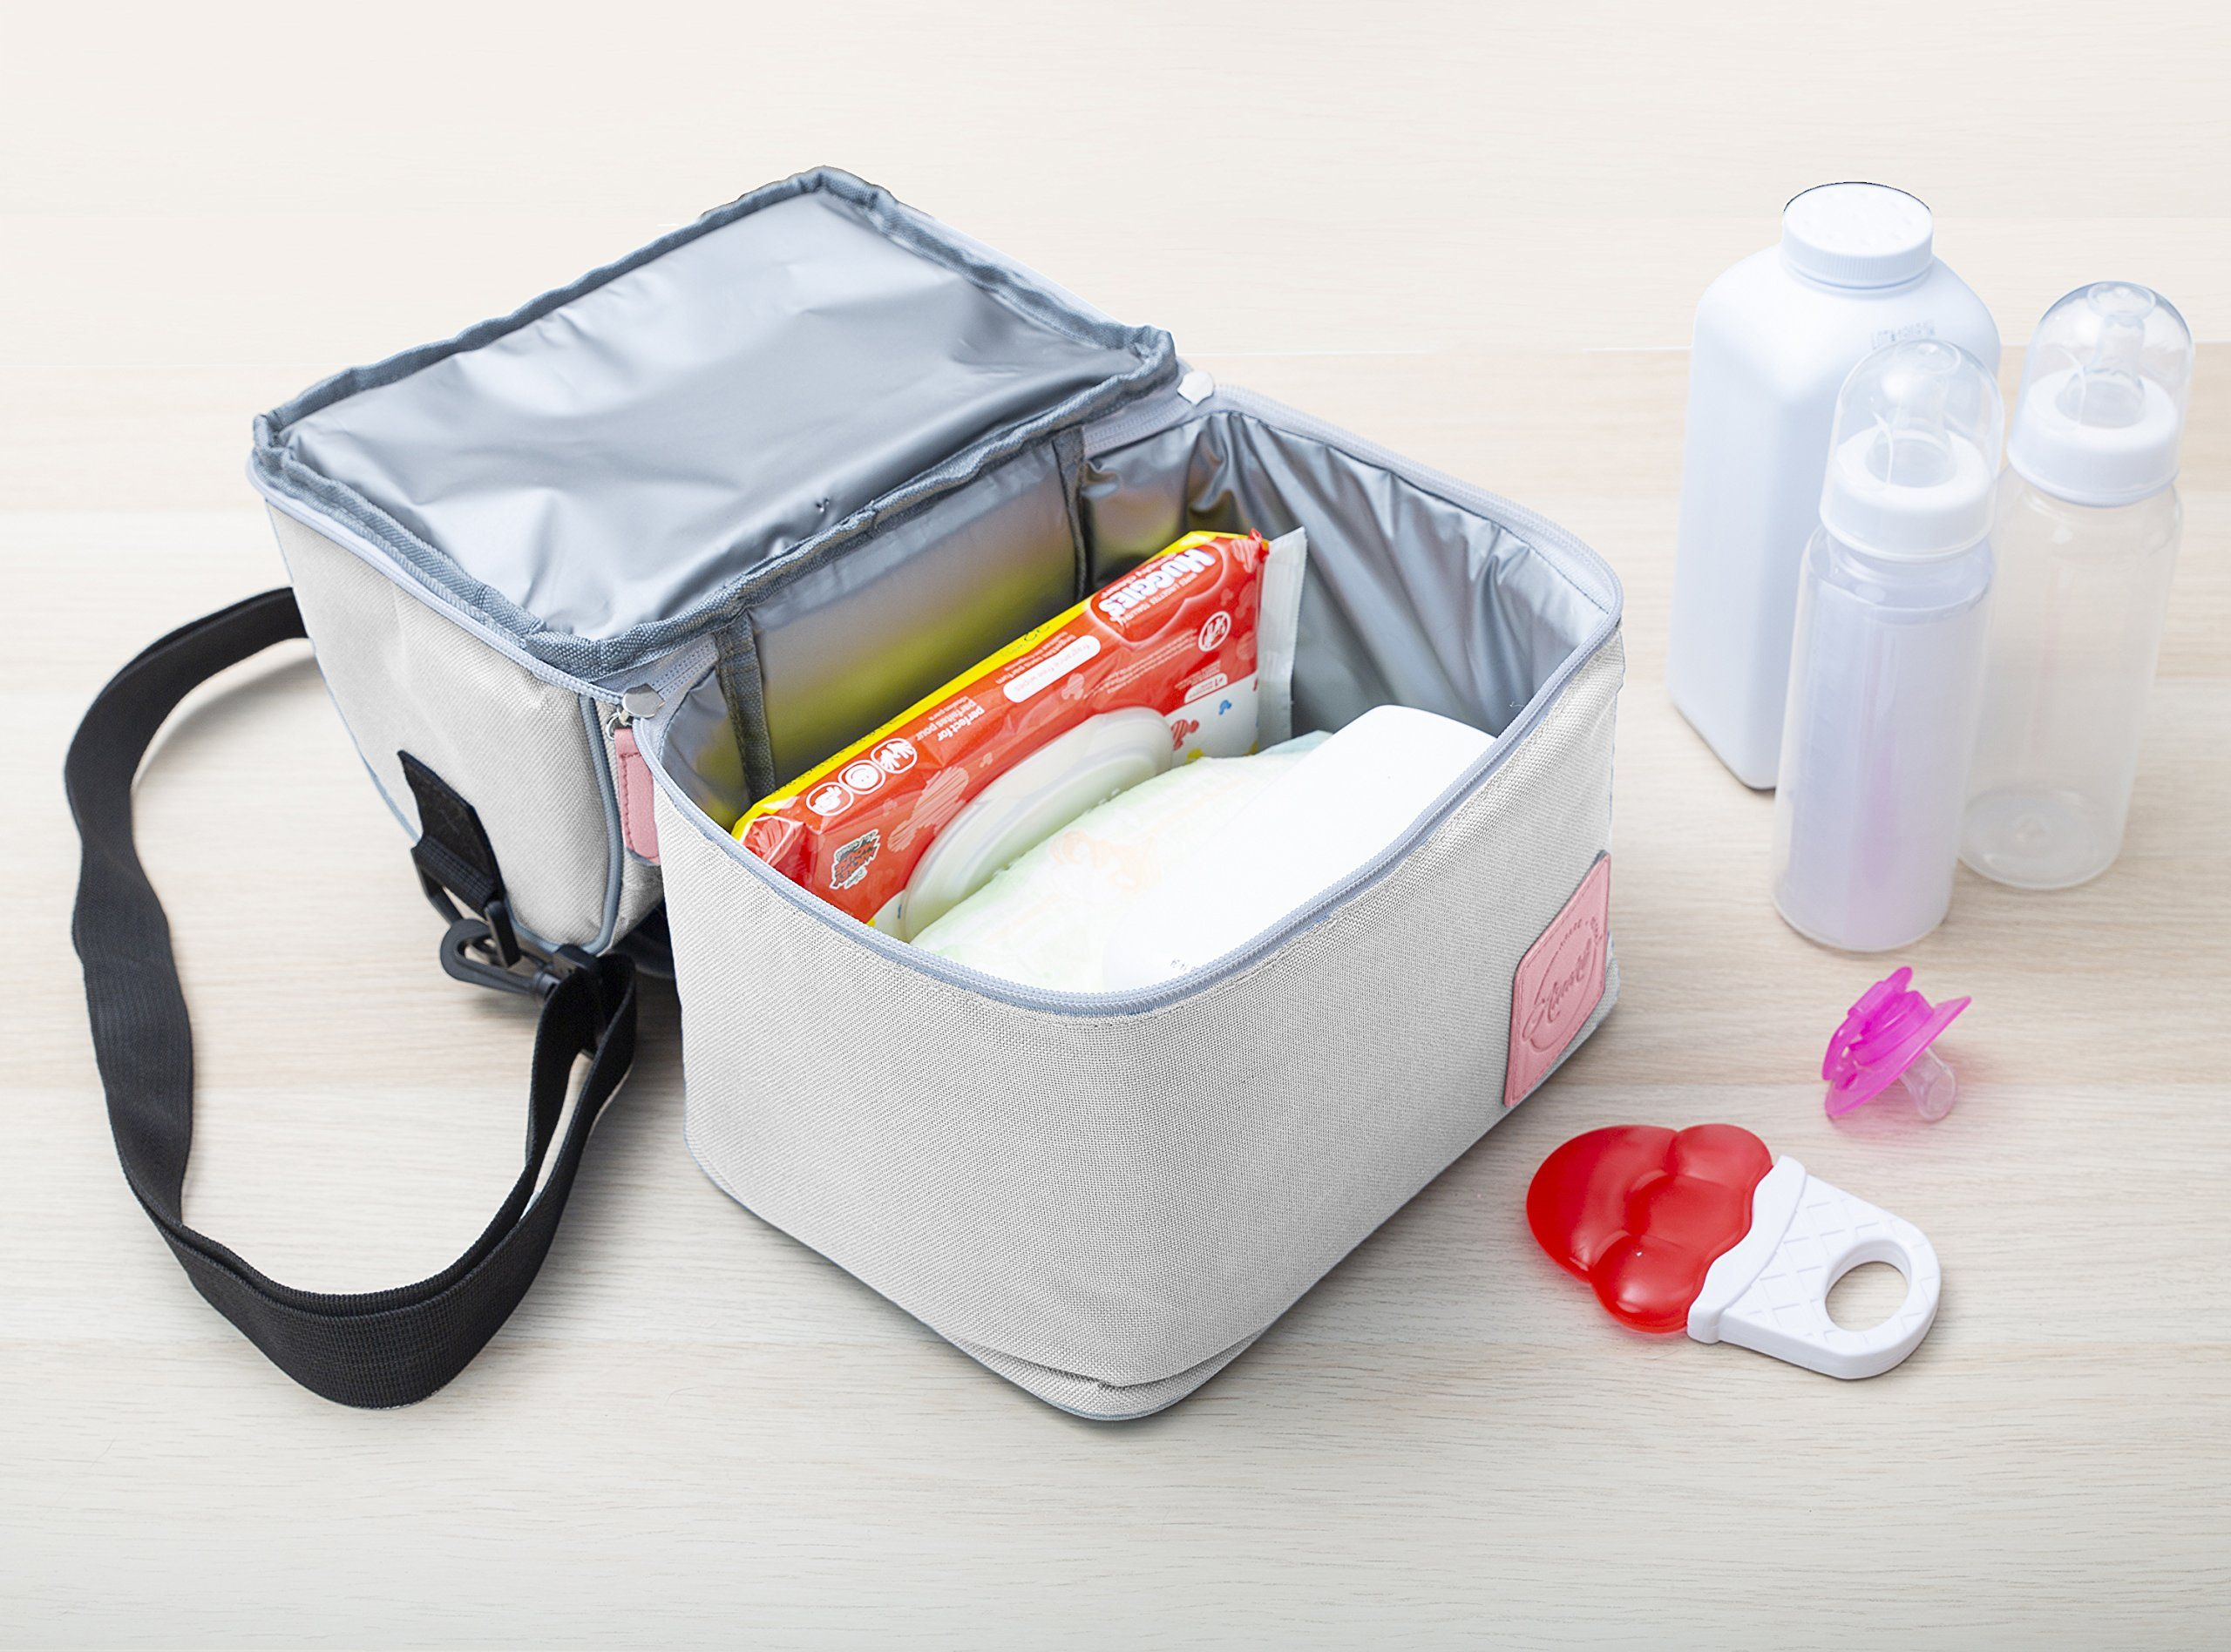 Tommee Tippee Pump and Go Insulated Cool Bag